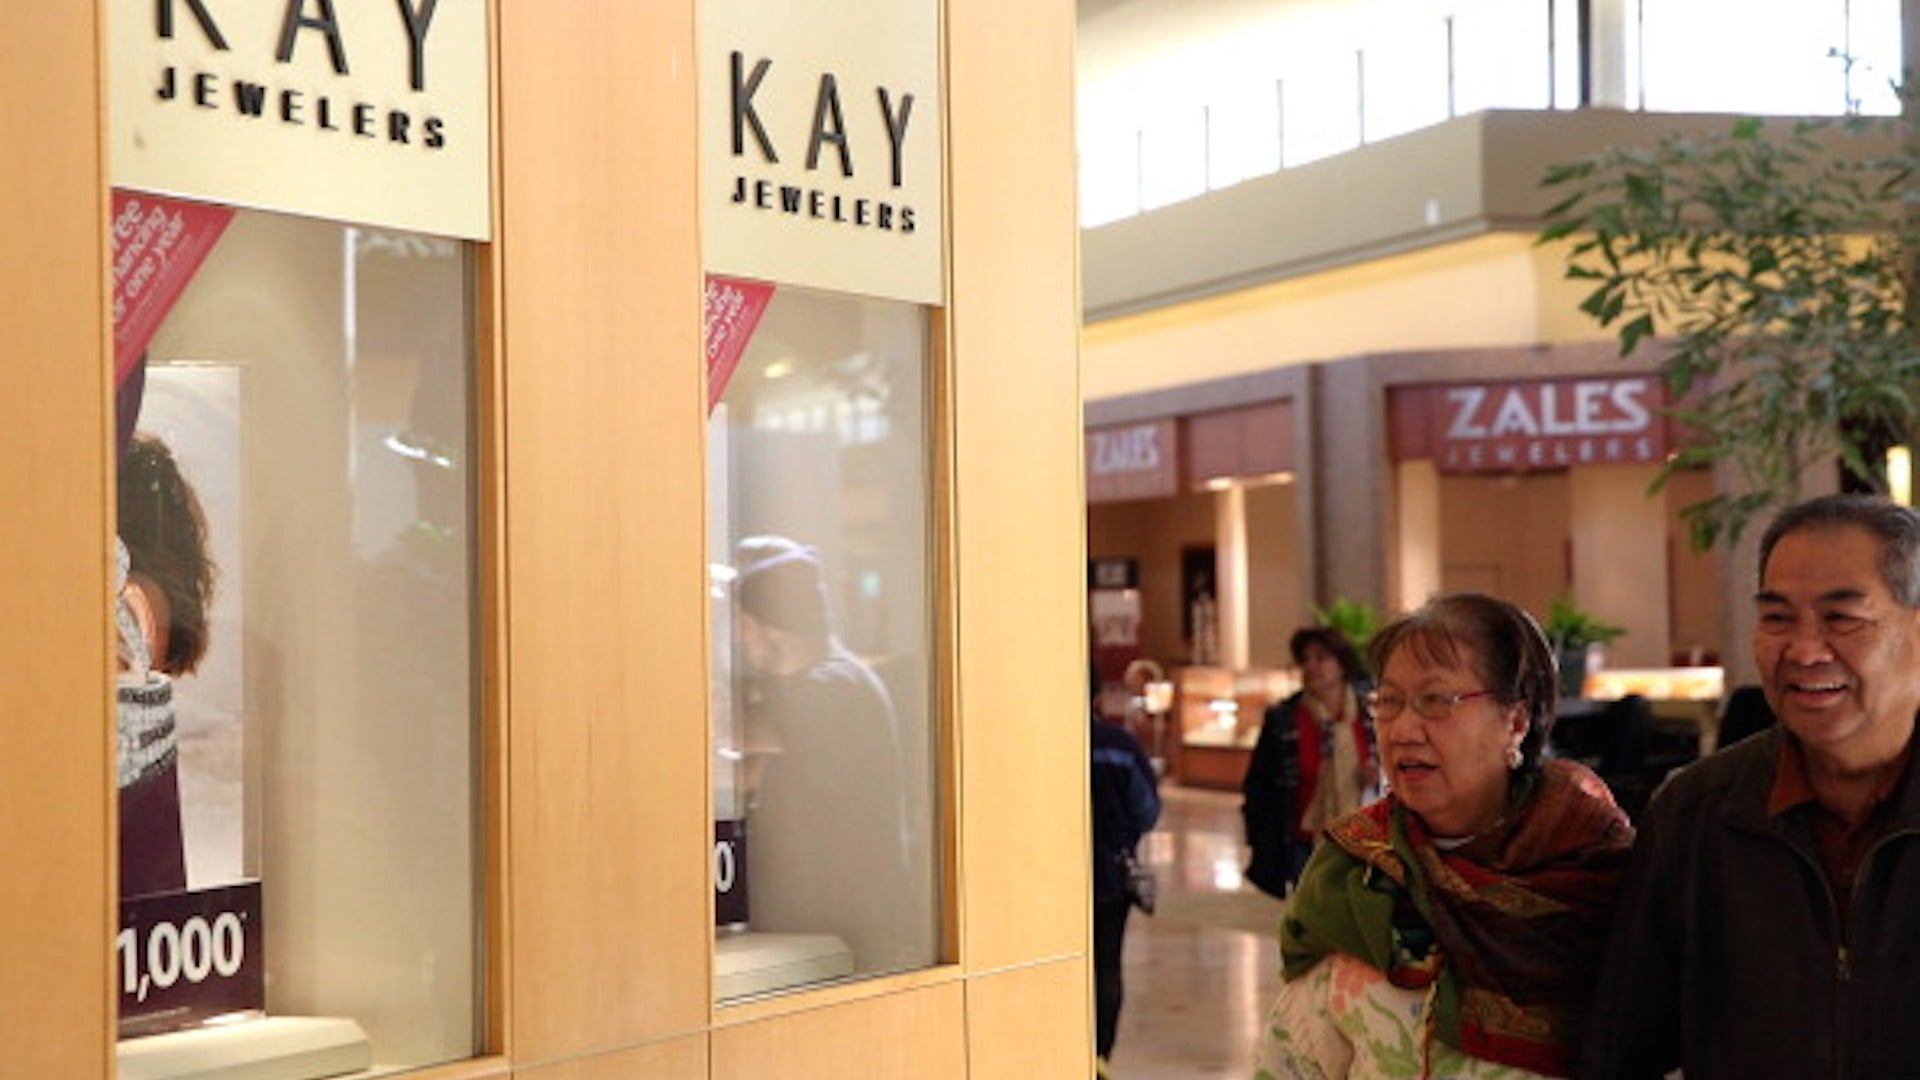 Kay And Jared Jewelry Company Accused Of Widespread Sexual Harassment